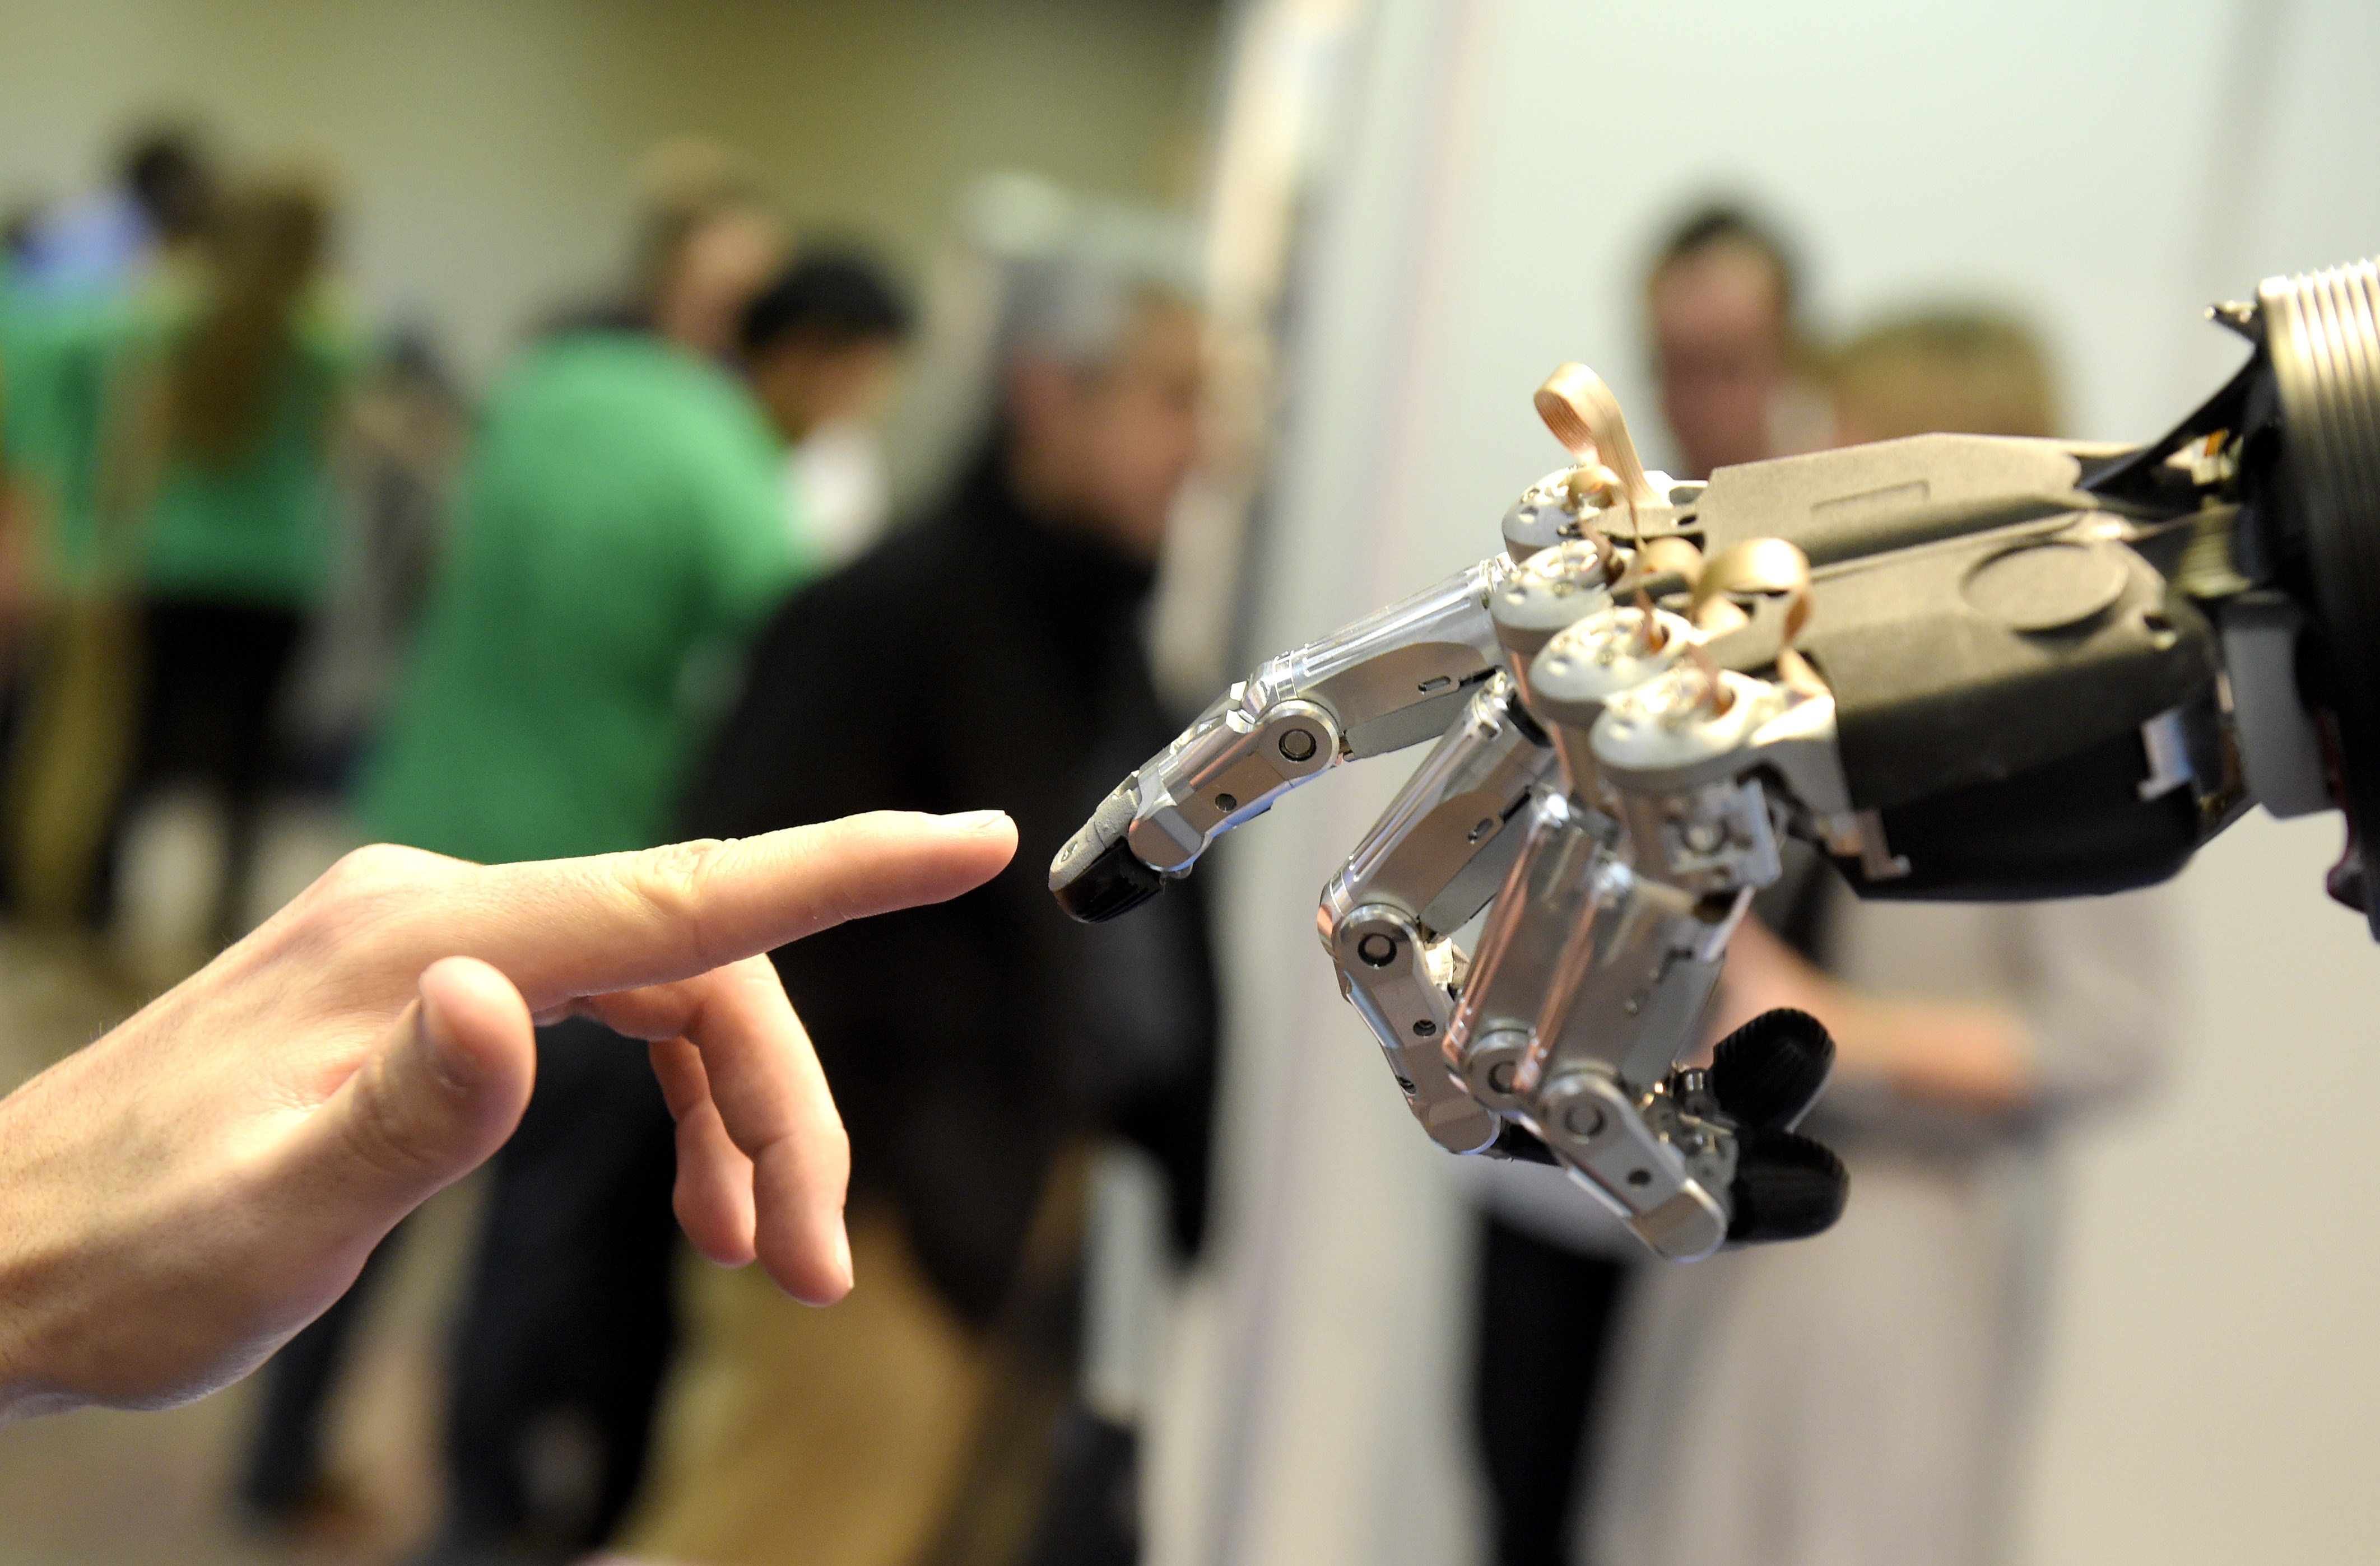 Can You Love a Robot like a Human Being? - Big Think